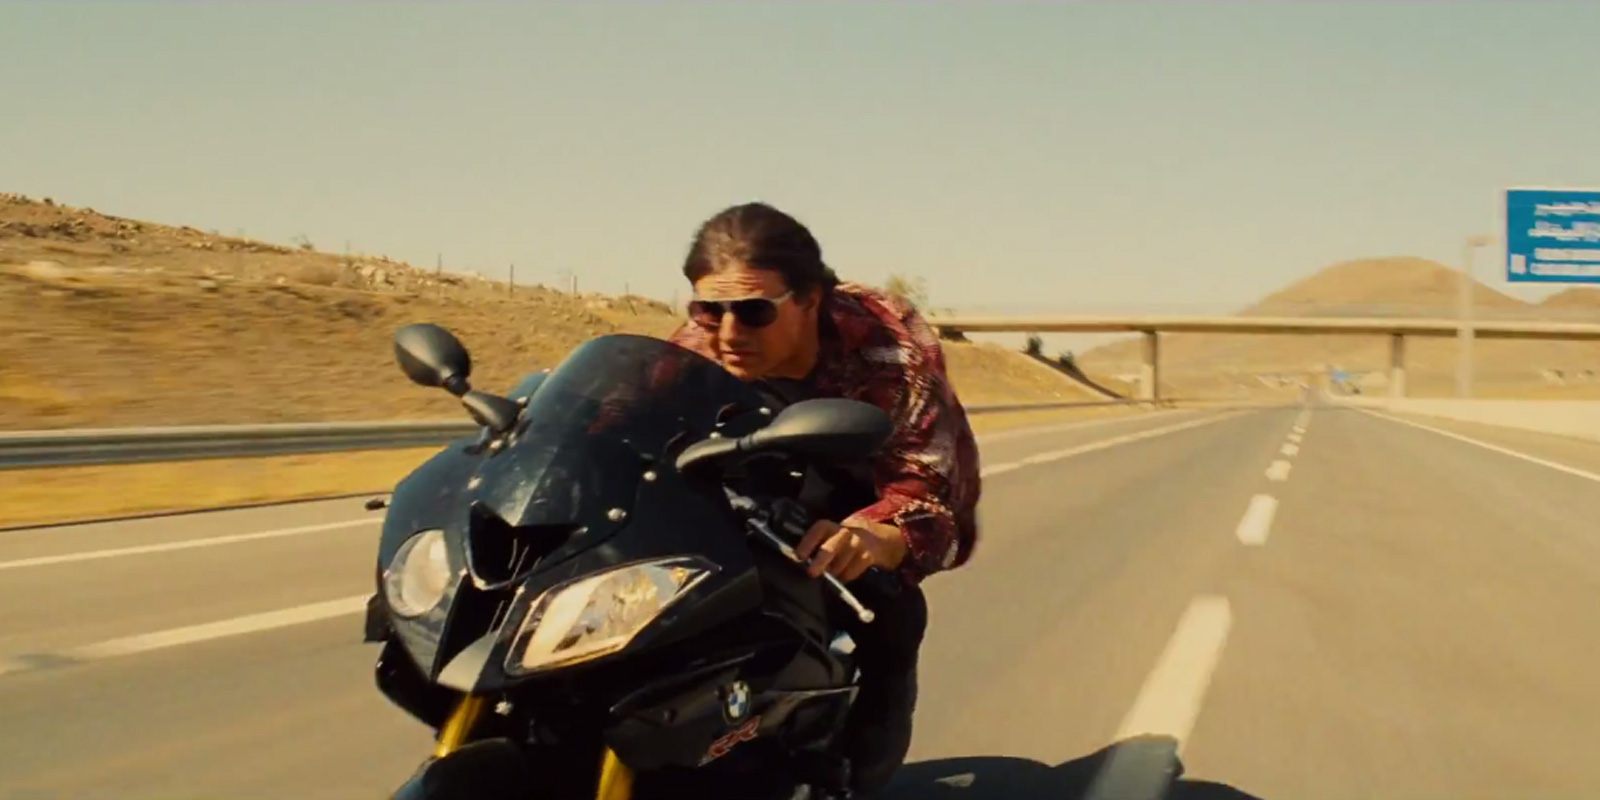 Movie Trailer #2: Mission: Impossible – Rogue Nation (2015